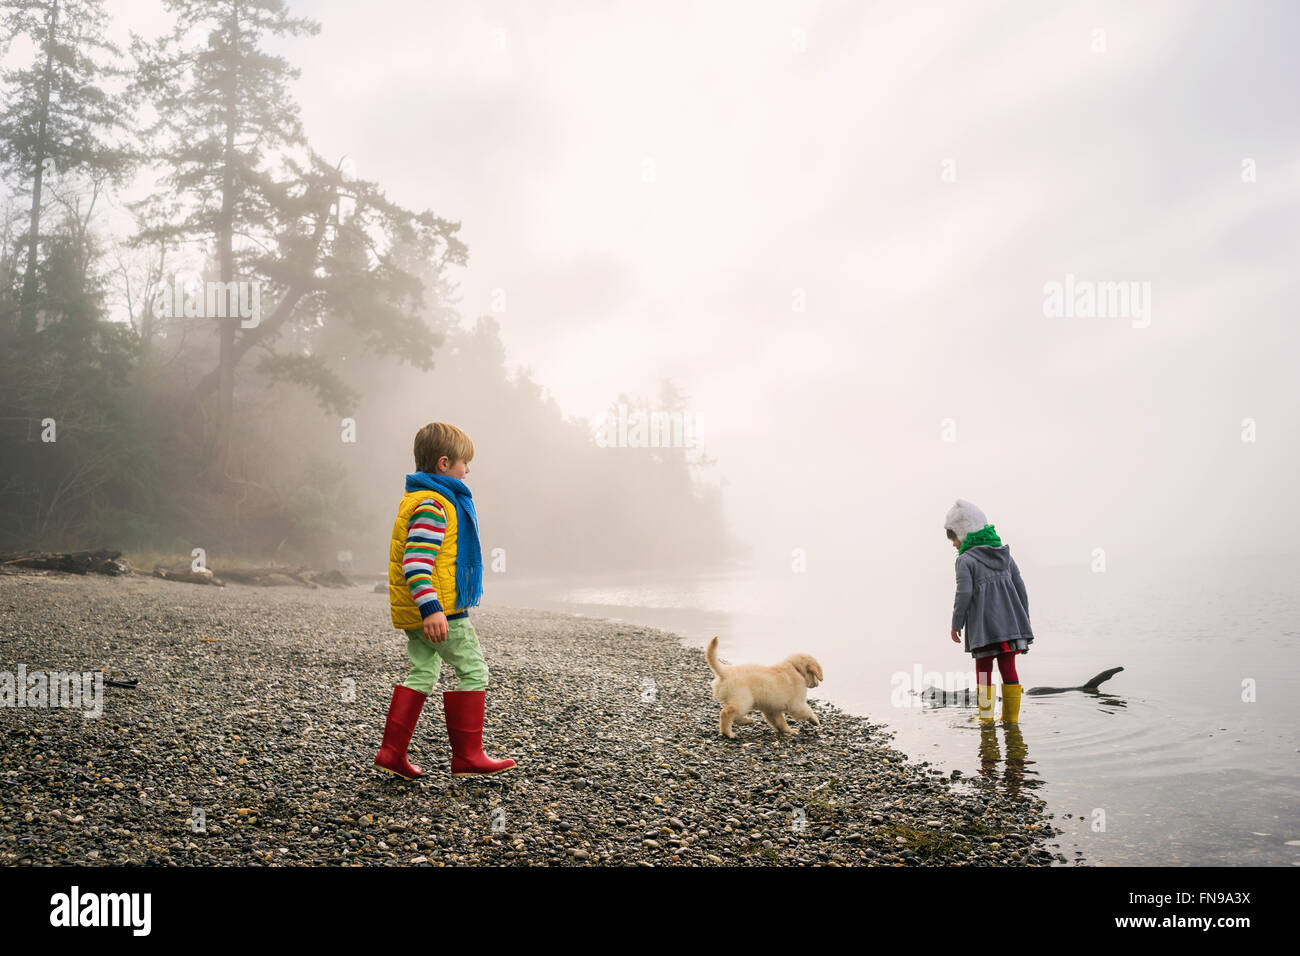 Boy and girl playing with golden retriever puppy dog on foggy beach - Stock Image